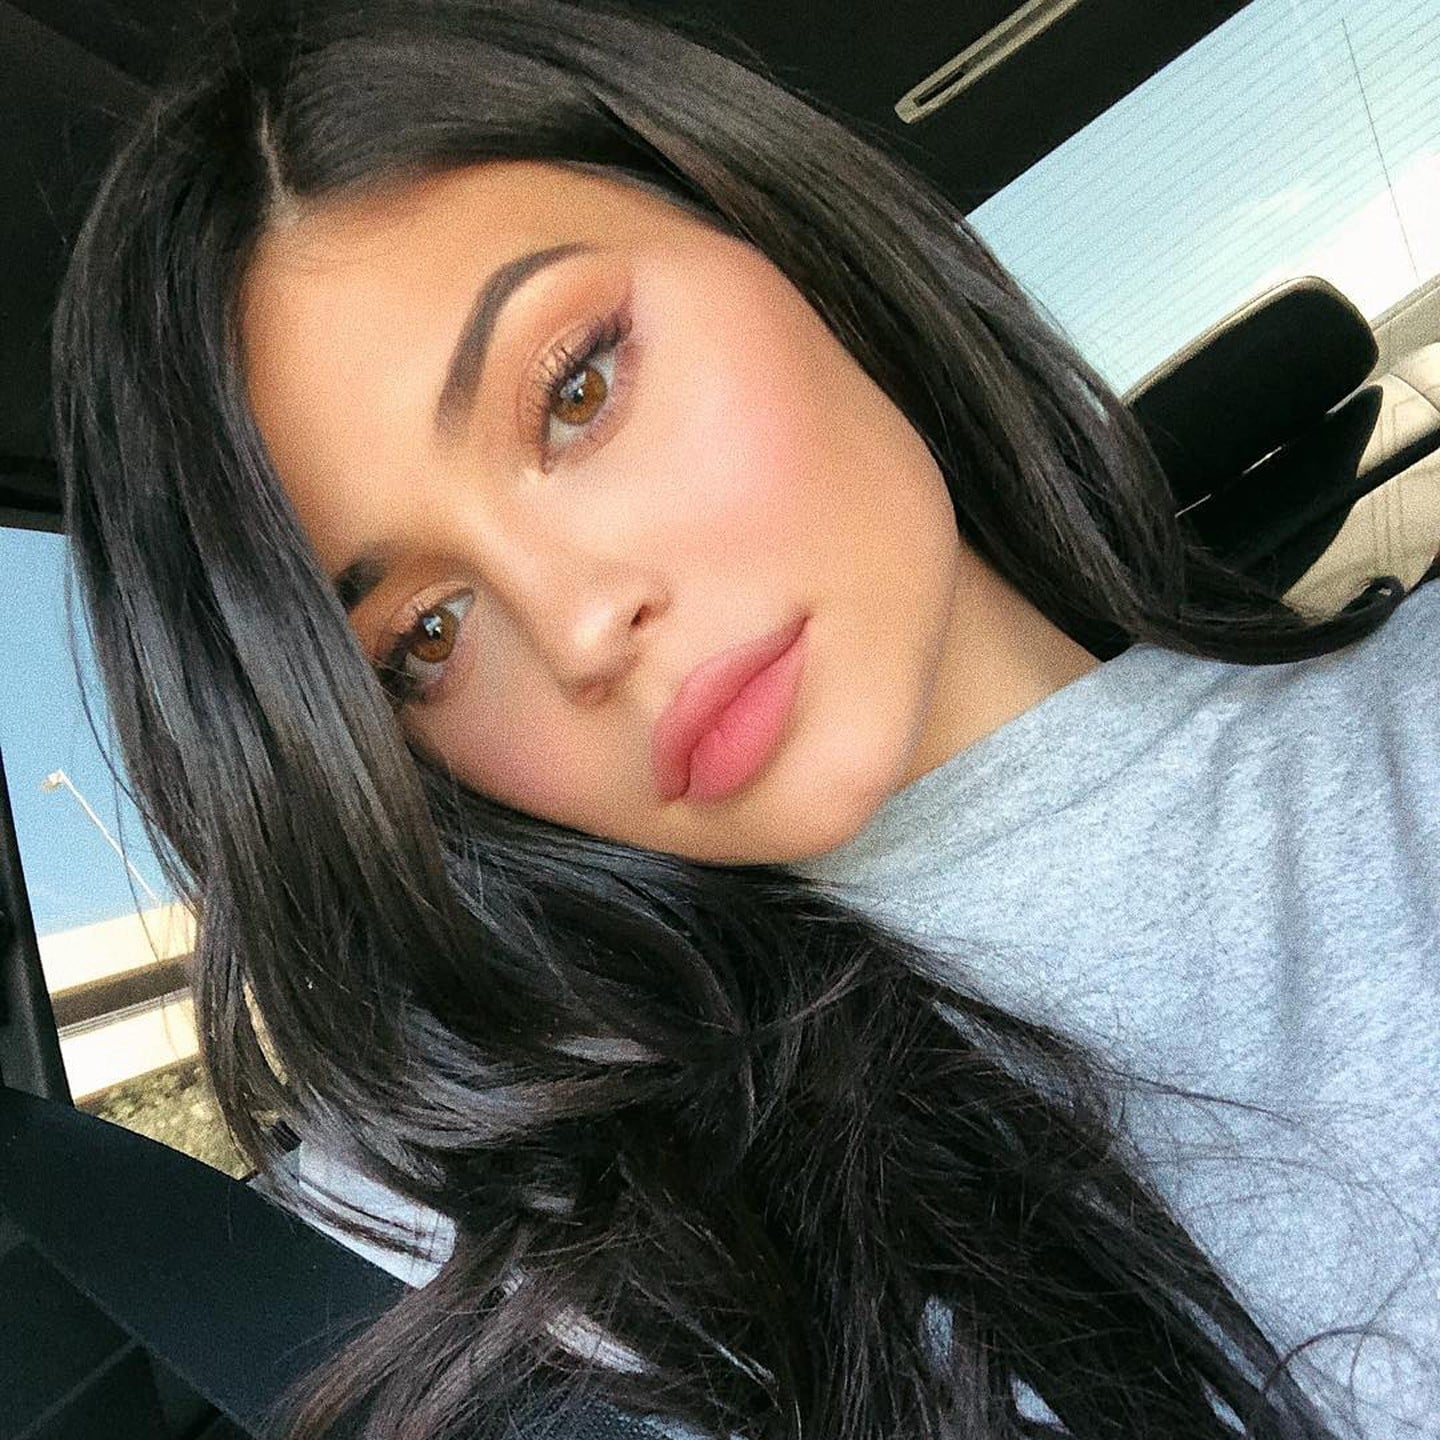 Kylie Jenner Eyeliner Tutorial on Instagram Stories | POPSUGAR Beauty